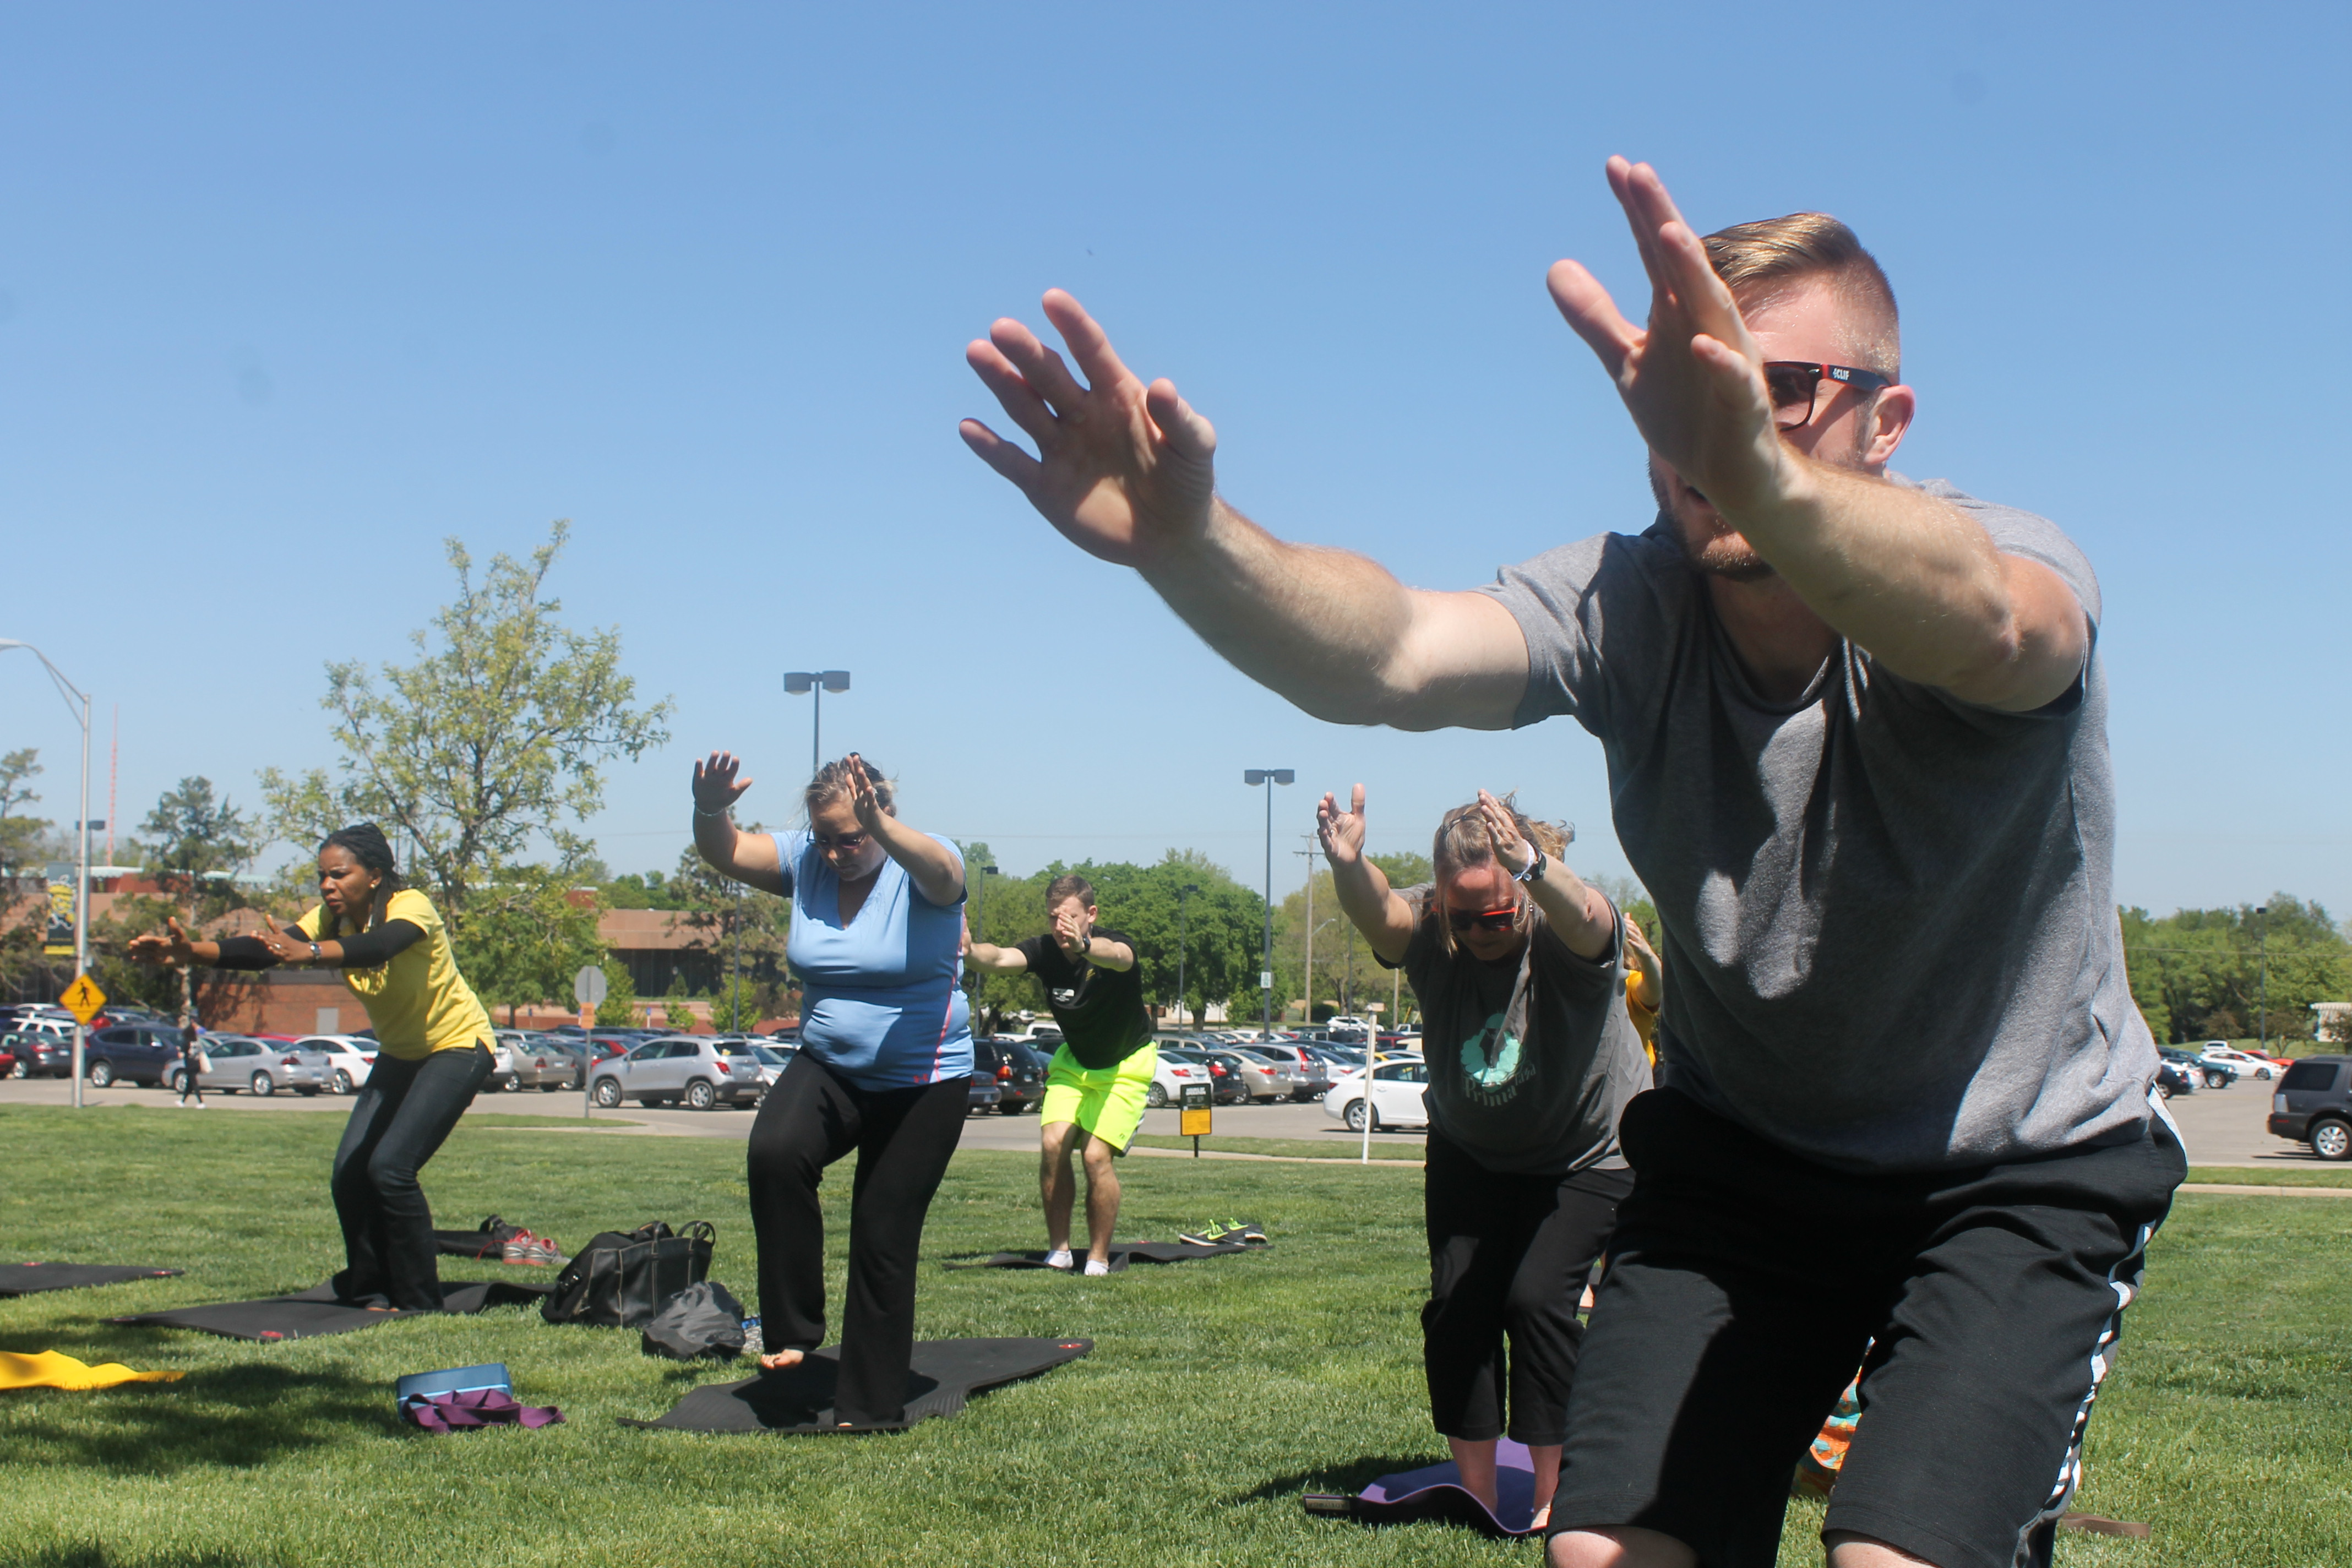 group of people doing outdoor yoga. Front most is a man in sunglasses reaching forward.